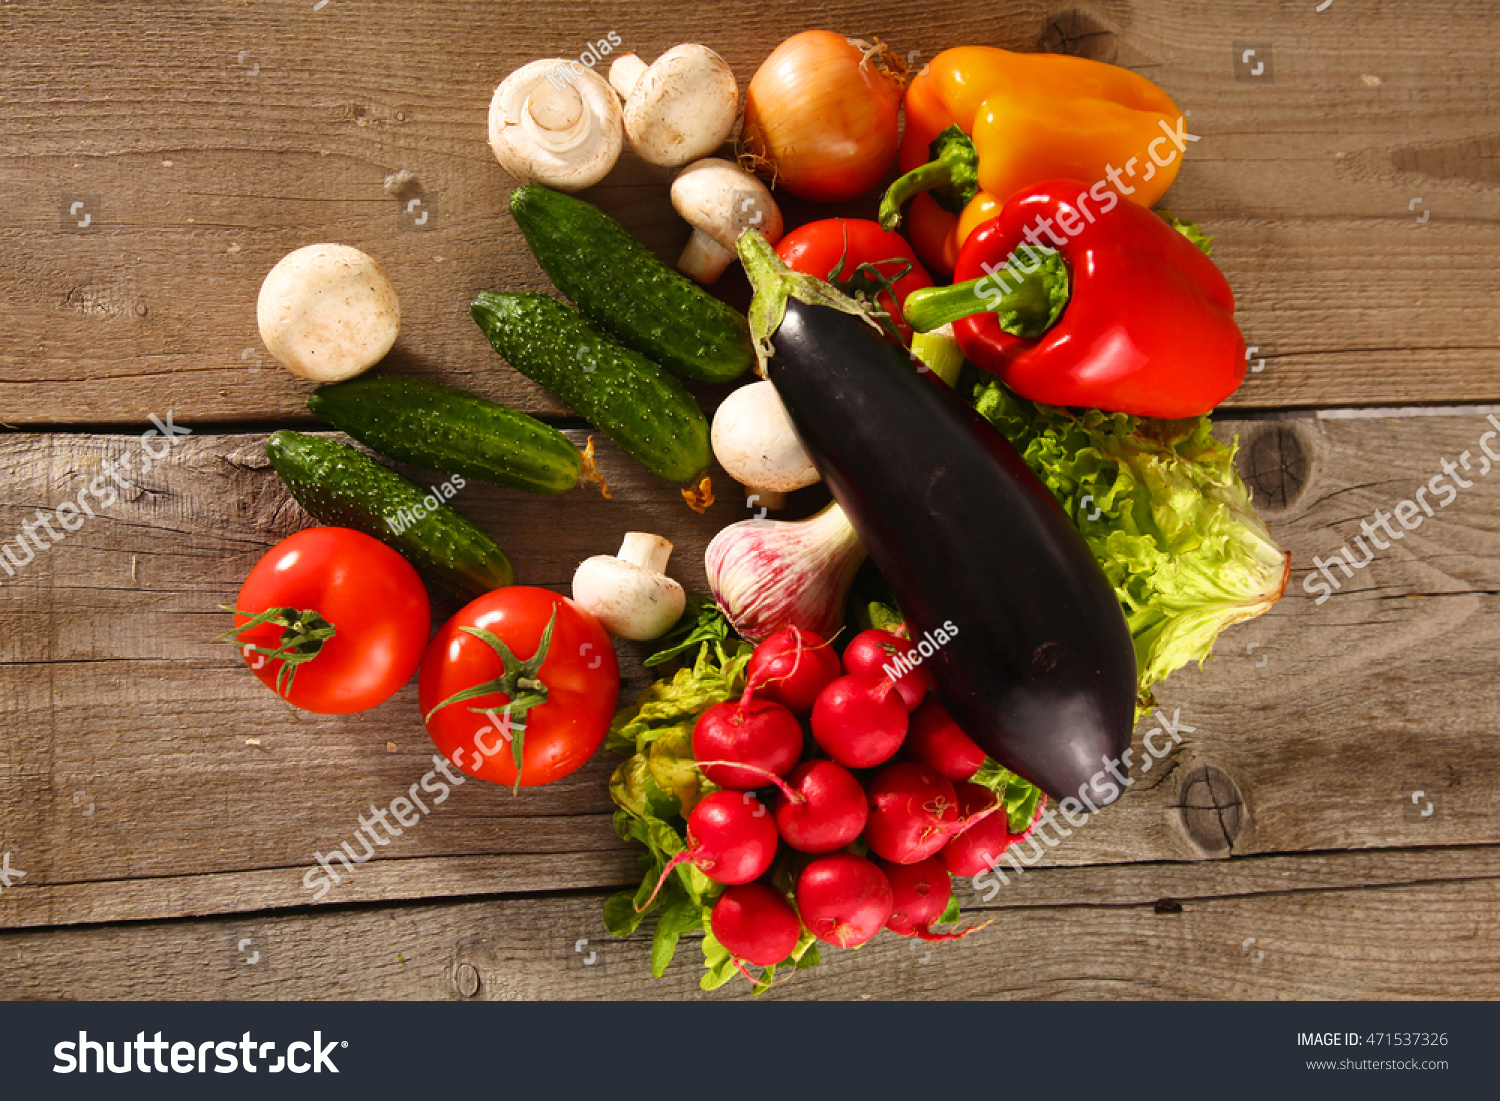 Fresh Vegetables On A Clean Wooden Table Stock Photo 471537326